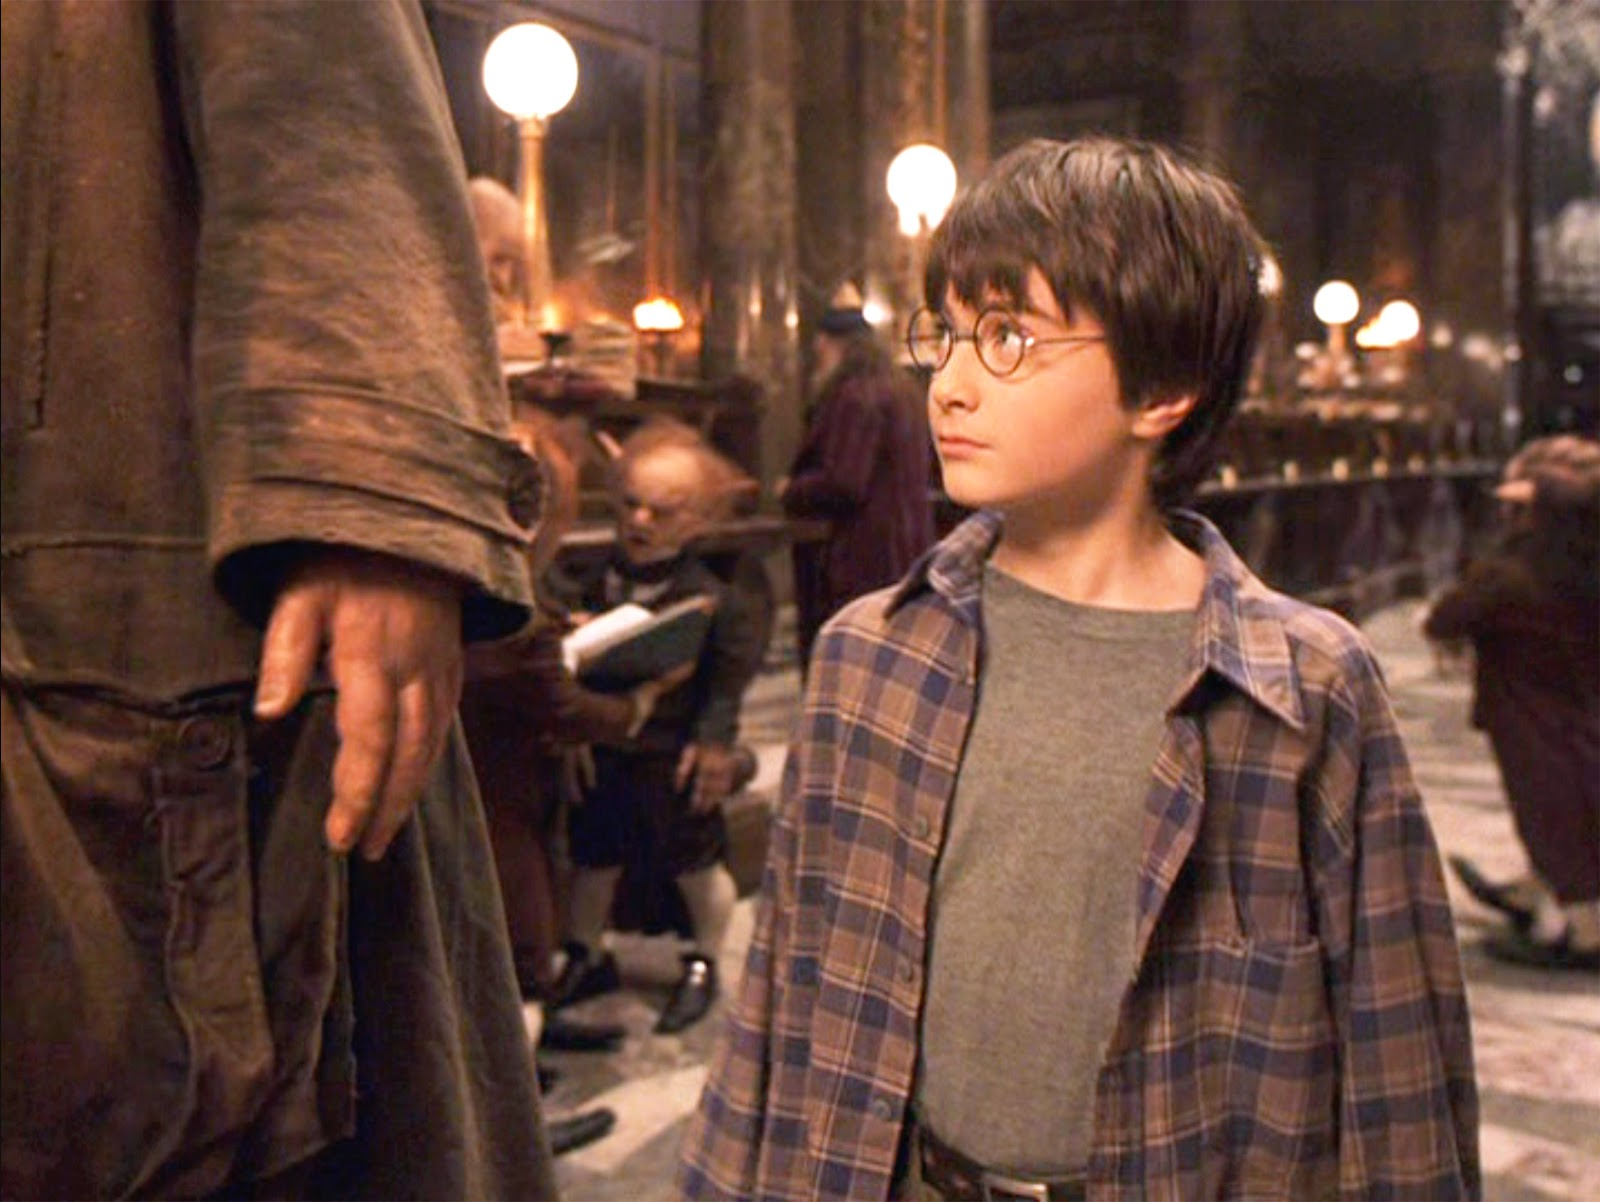 2 page essay on harry potter and the sorcerer s stone 91 121 113 106 2 page essay on harry potter and the sorcerer s stone